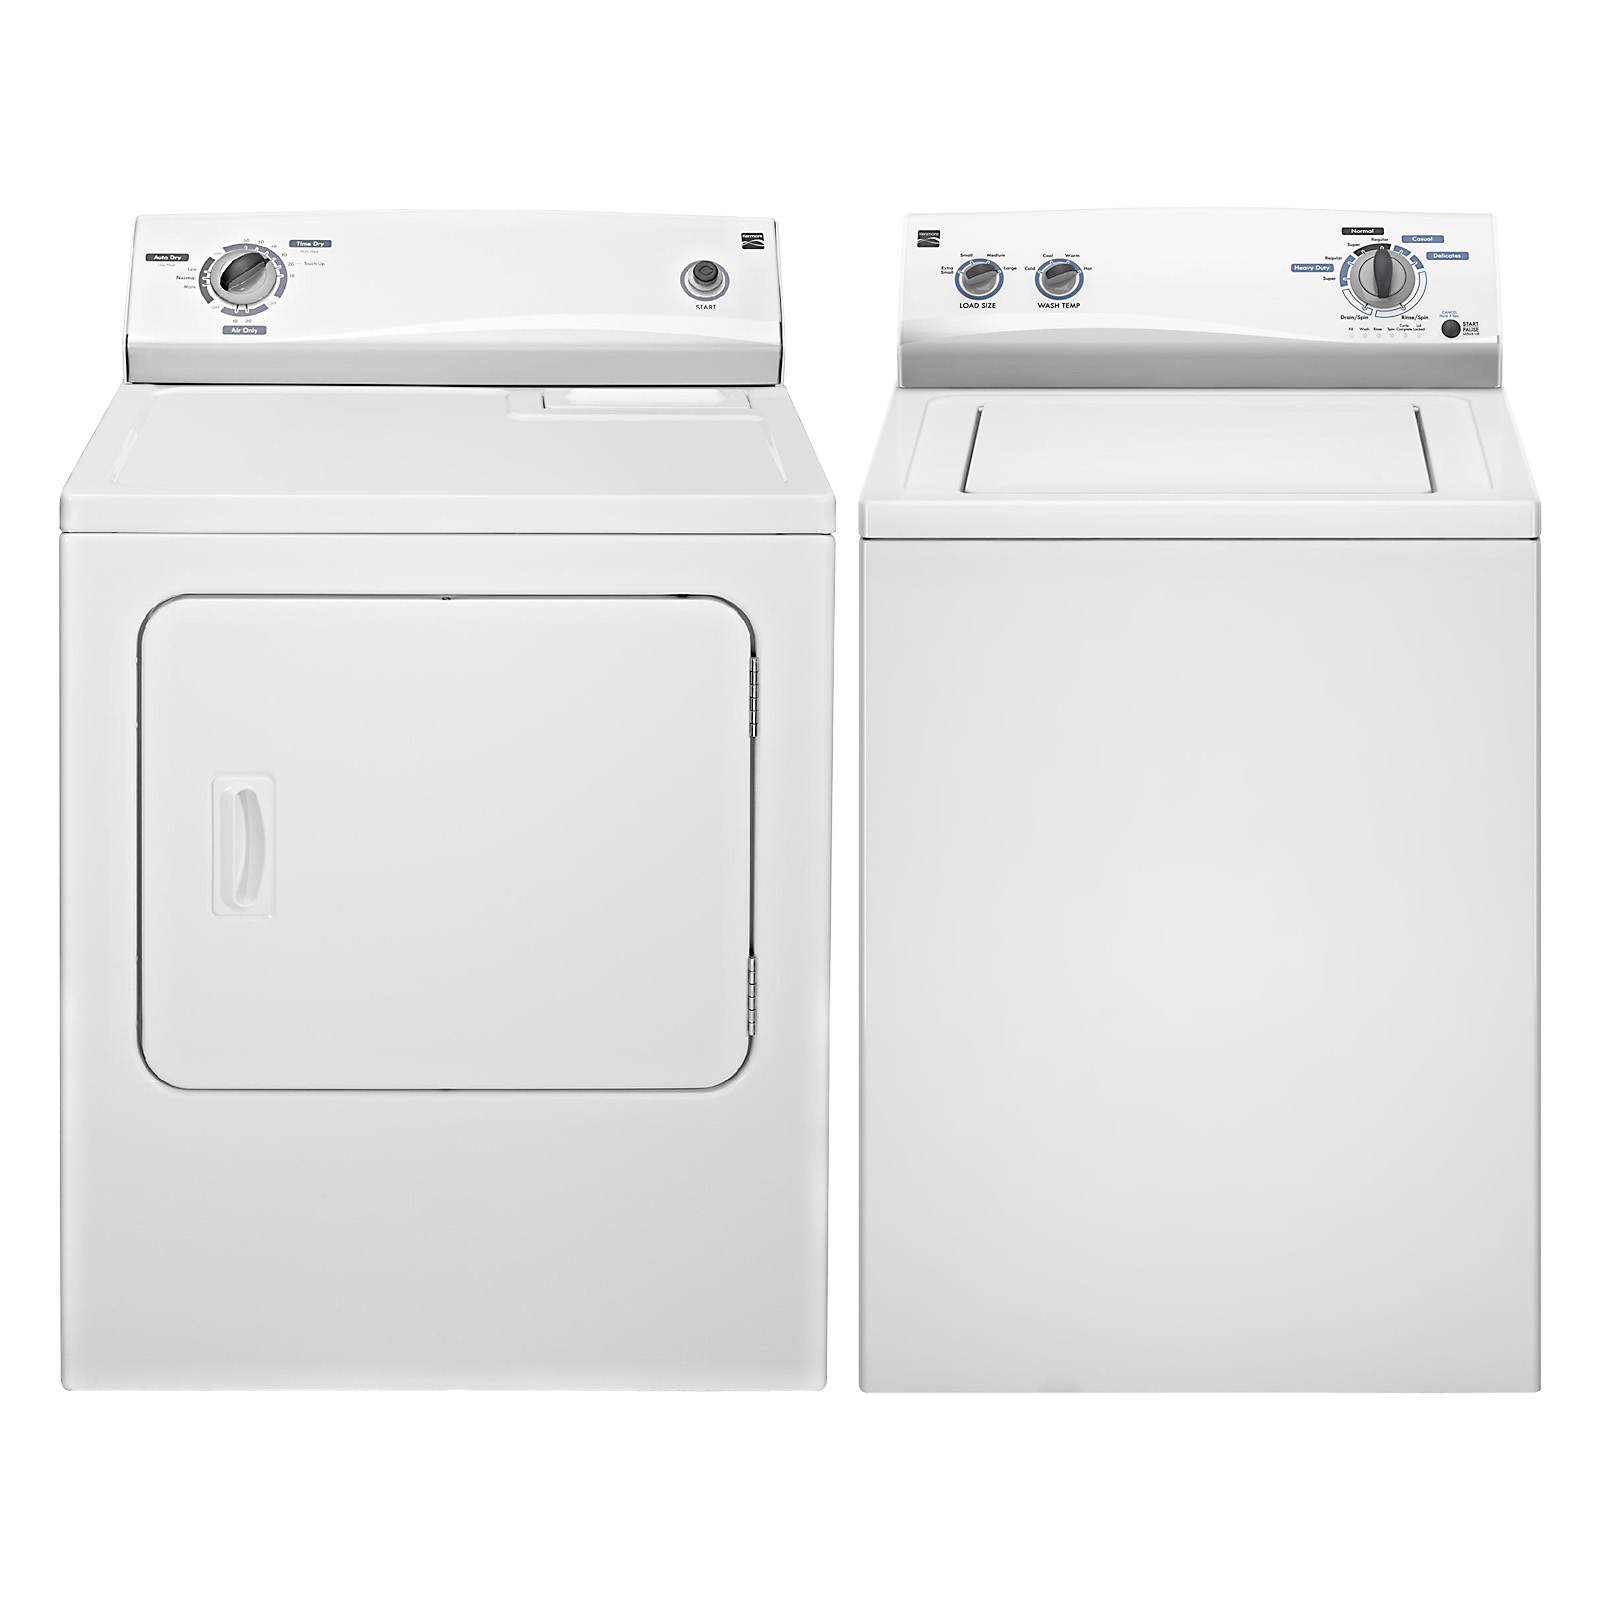 3.4 cu. ft. Top-Load Washing Machine & 6.5 cu. ft. Electric Dryer